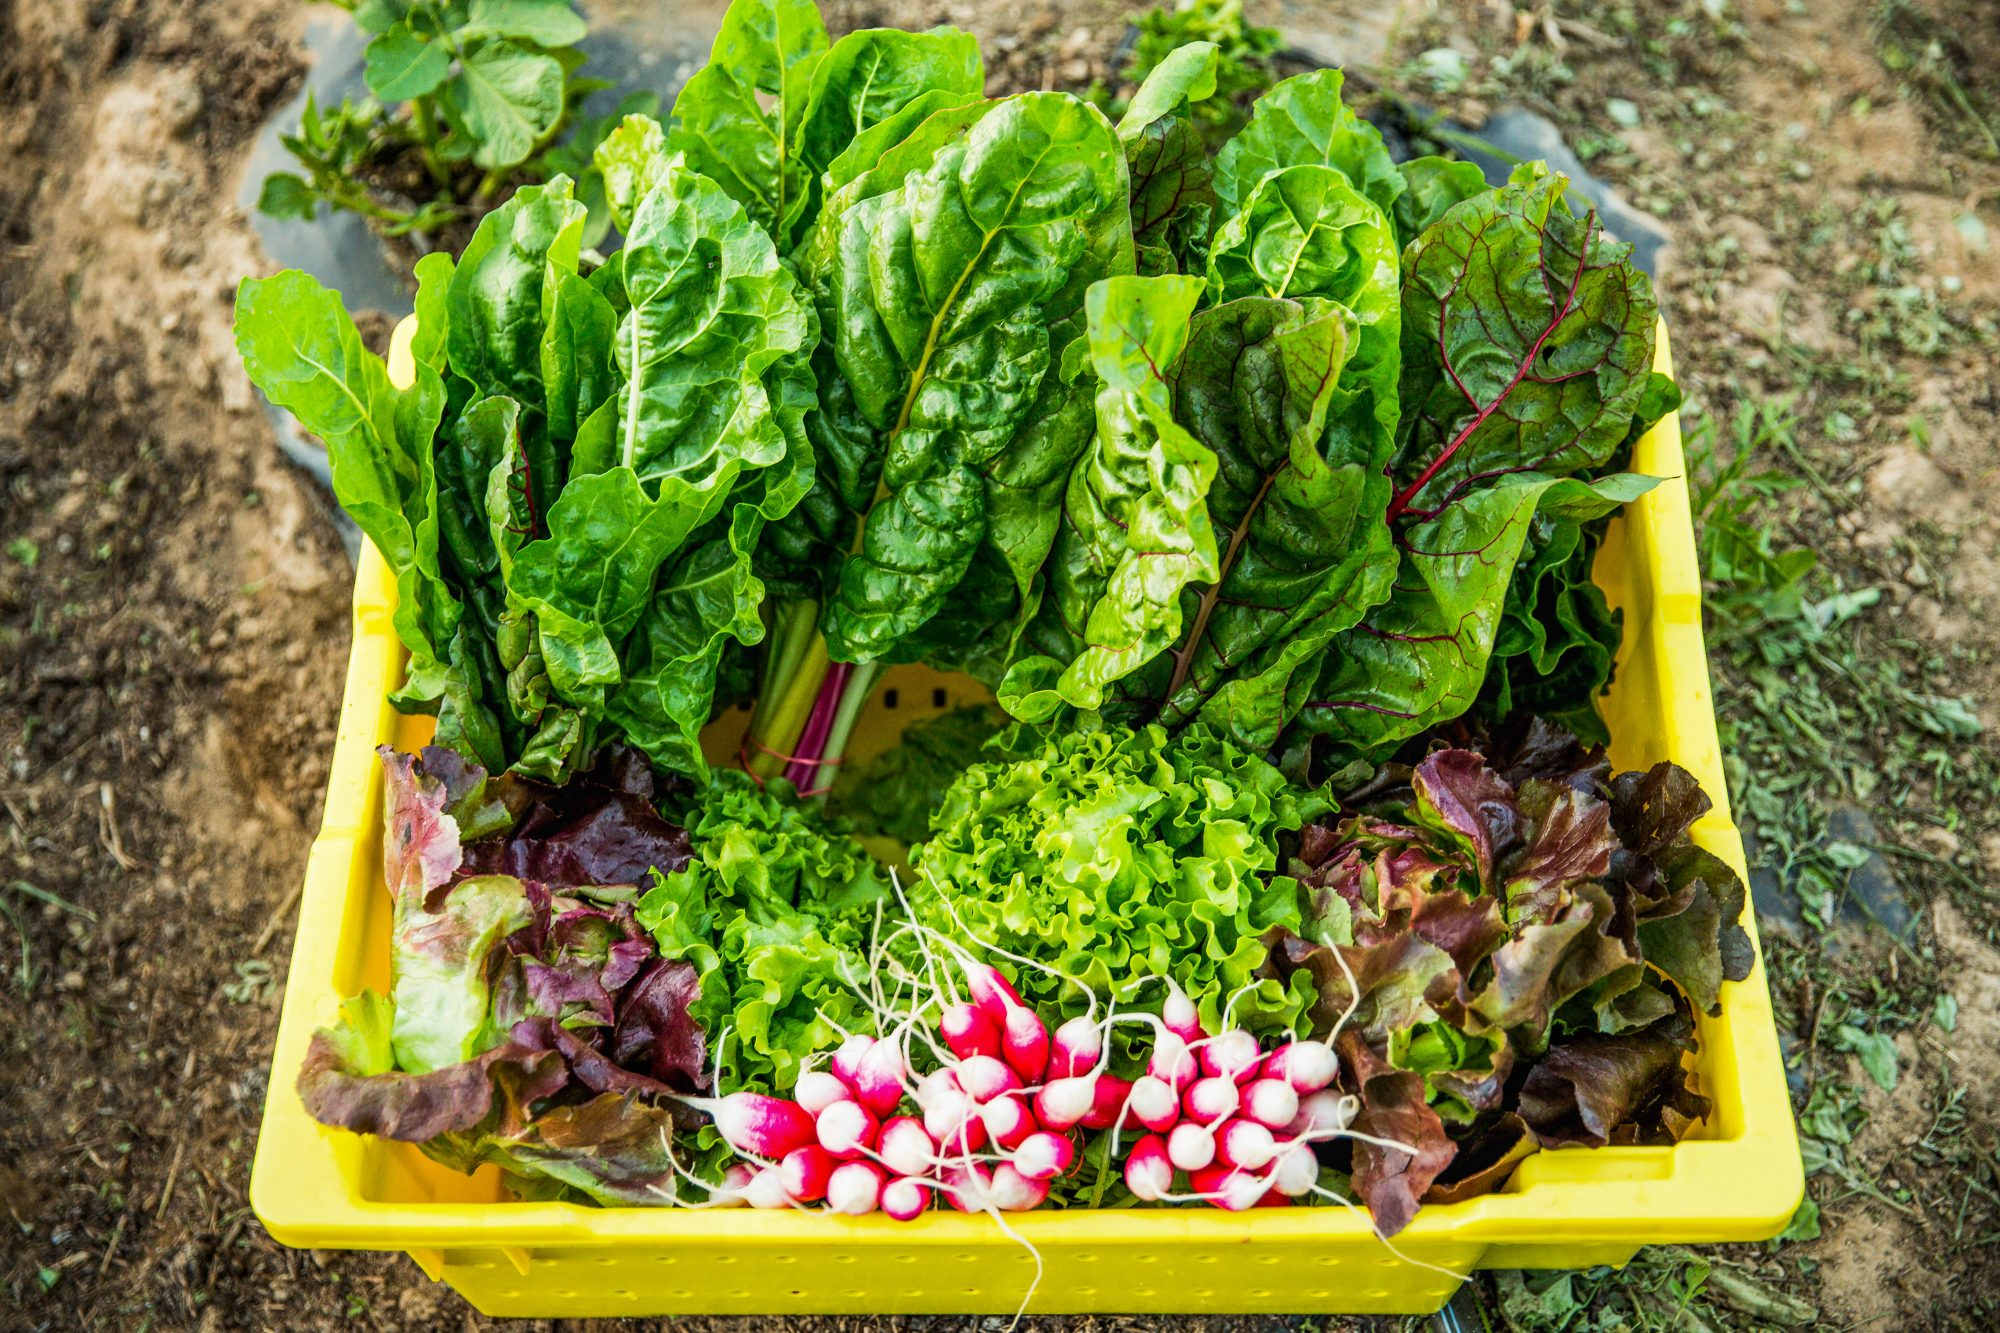 swiss chard and other vegetables